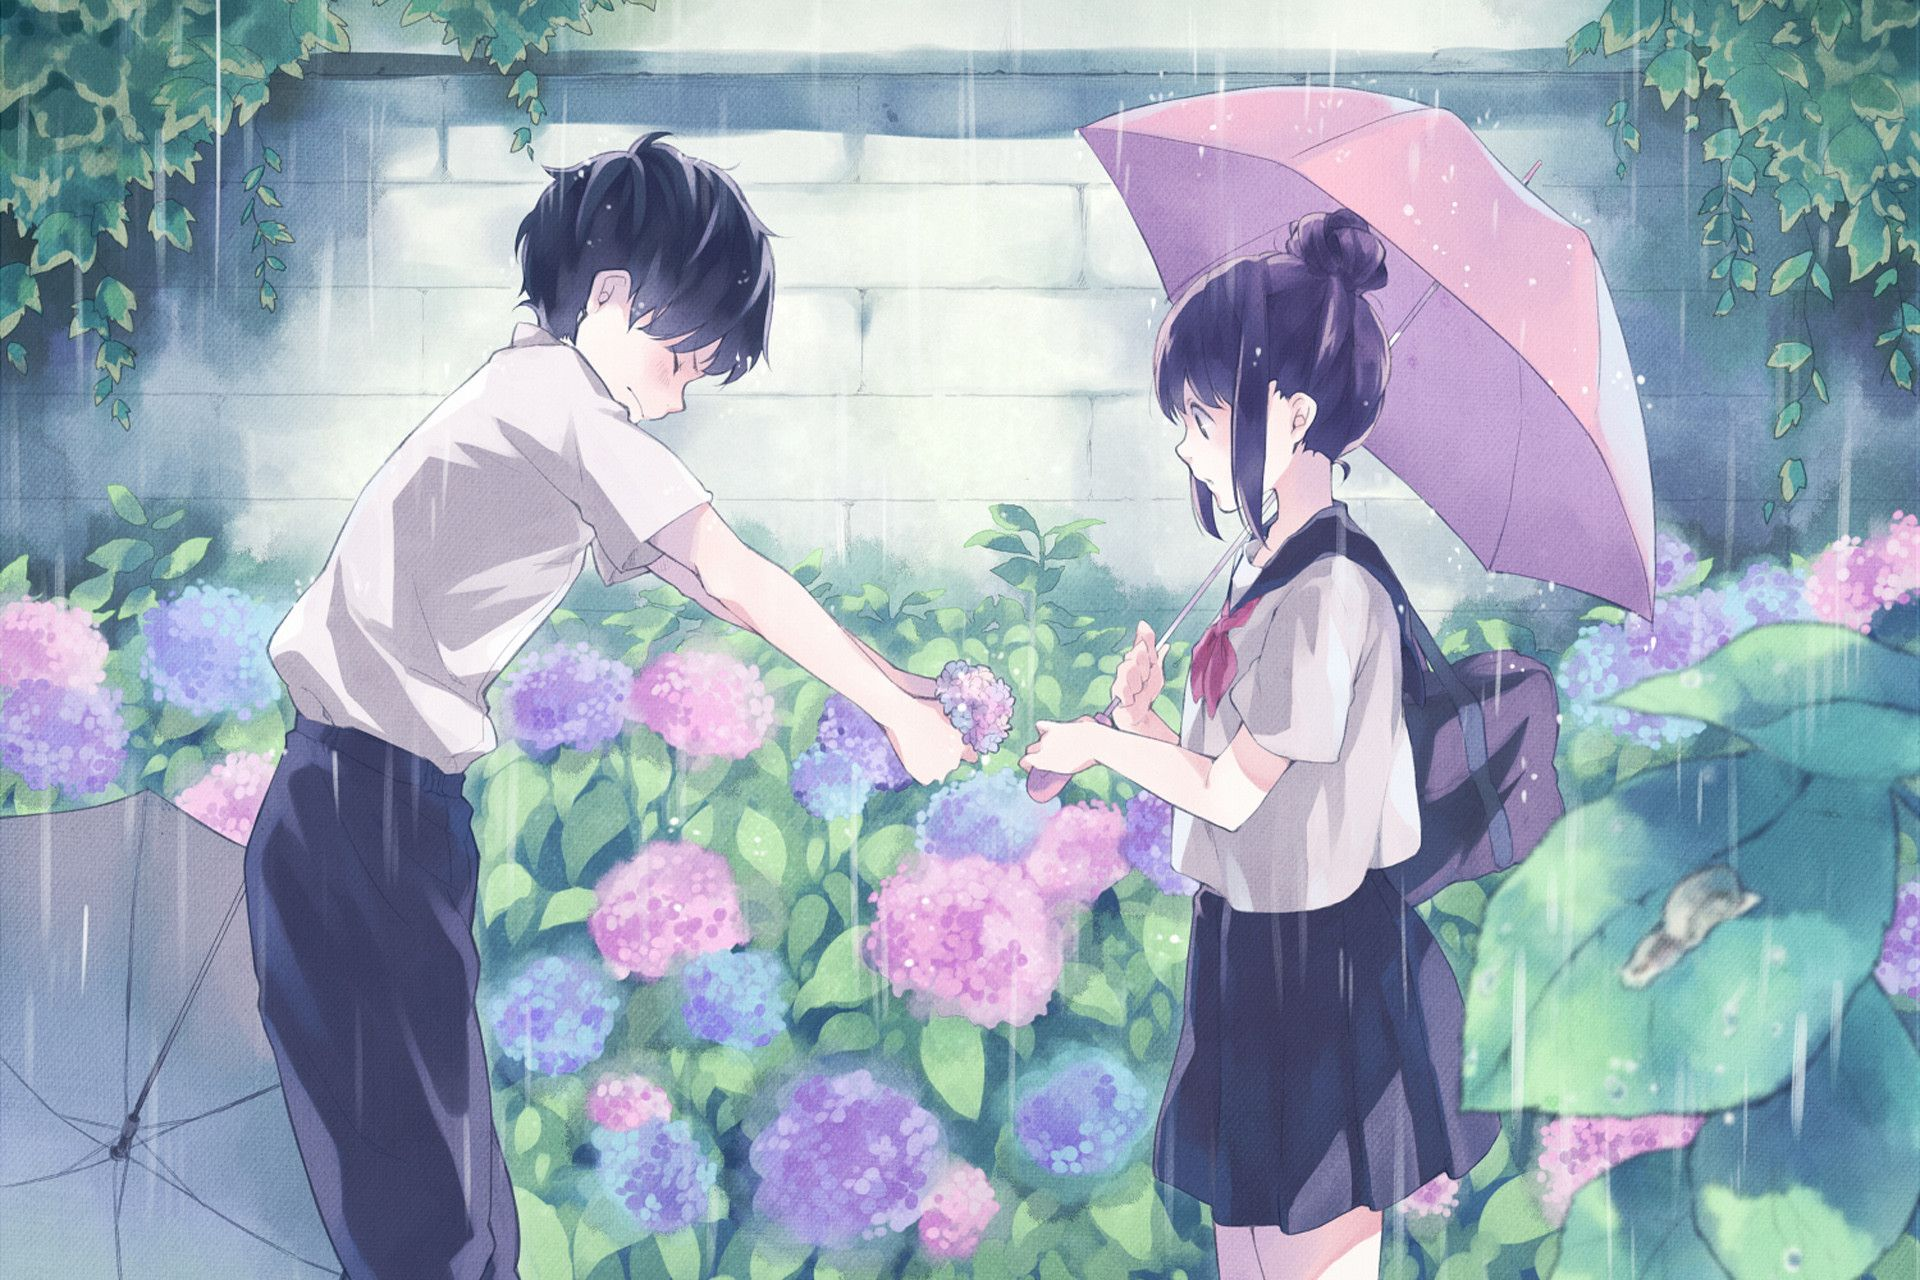 Hd Wallpaper Anime Couple Girl Boy Hug Hd Wallpaper Desktop Pc Background Anime Love Couples Wallpaper Anime Love Co Romantic Anime Anime Wallpaper Anime Love